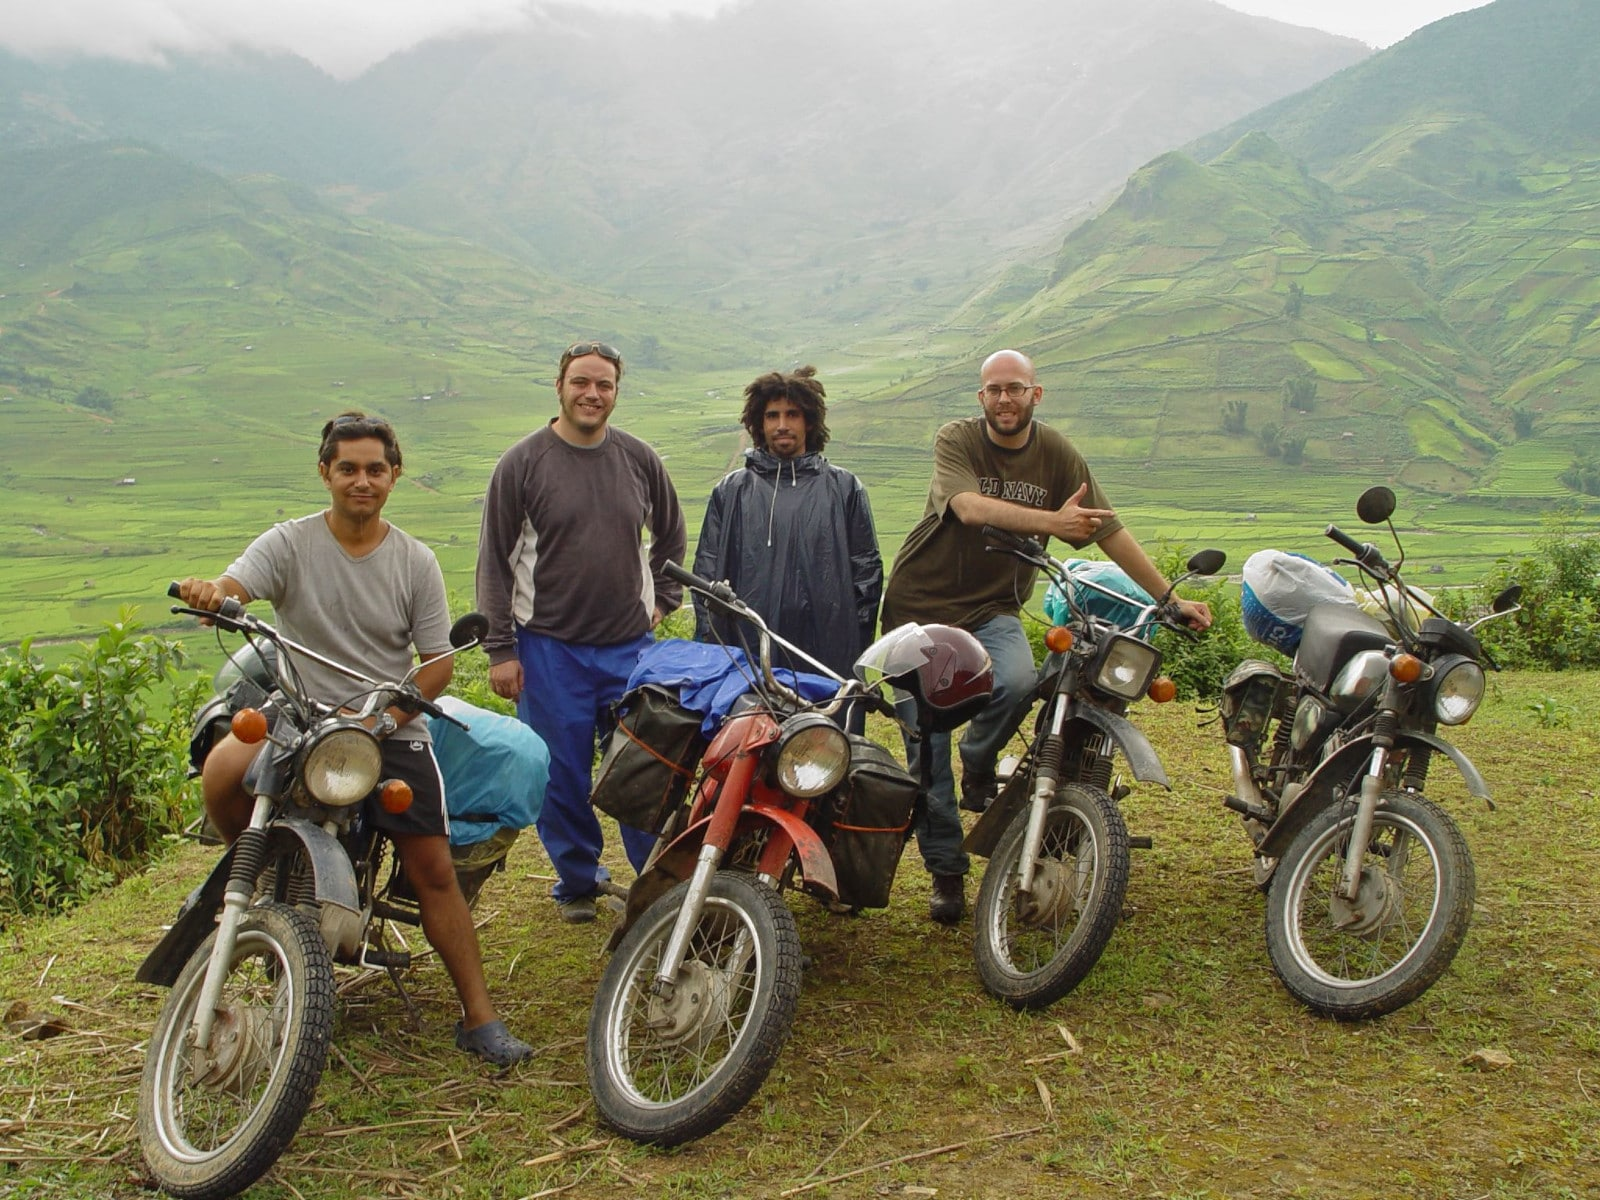 Image of a group of men Between Nghia Lo and Than Uyen in Vietnam